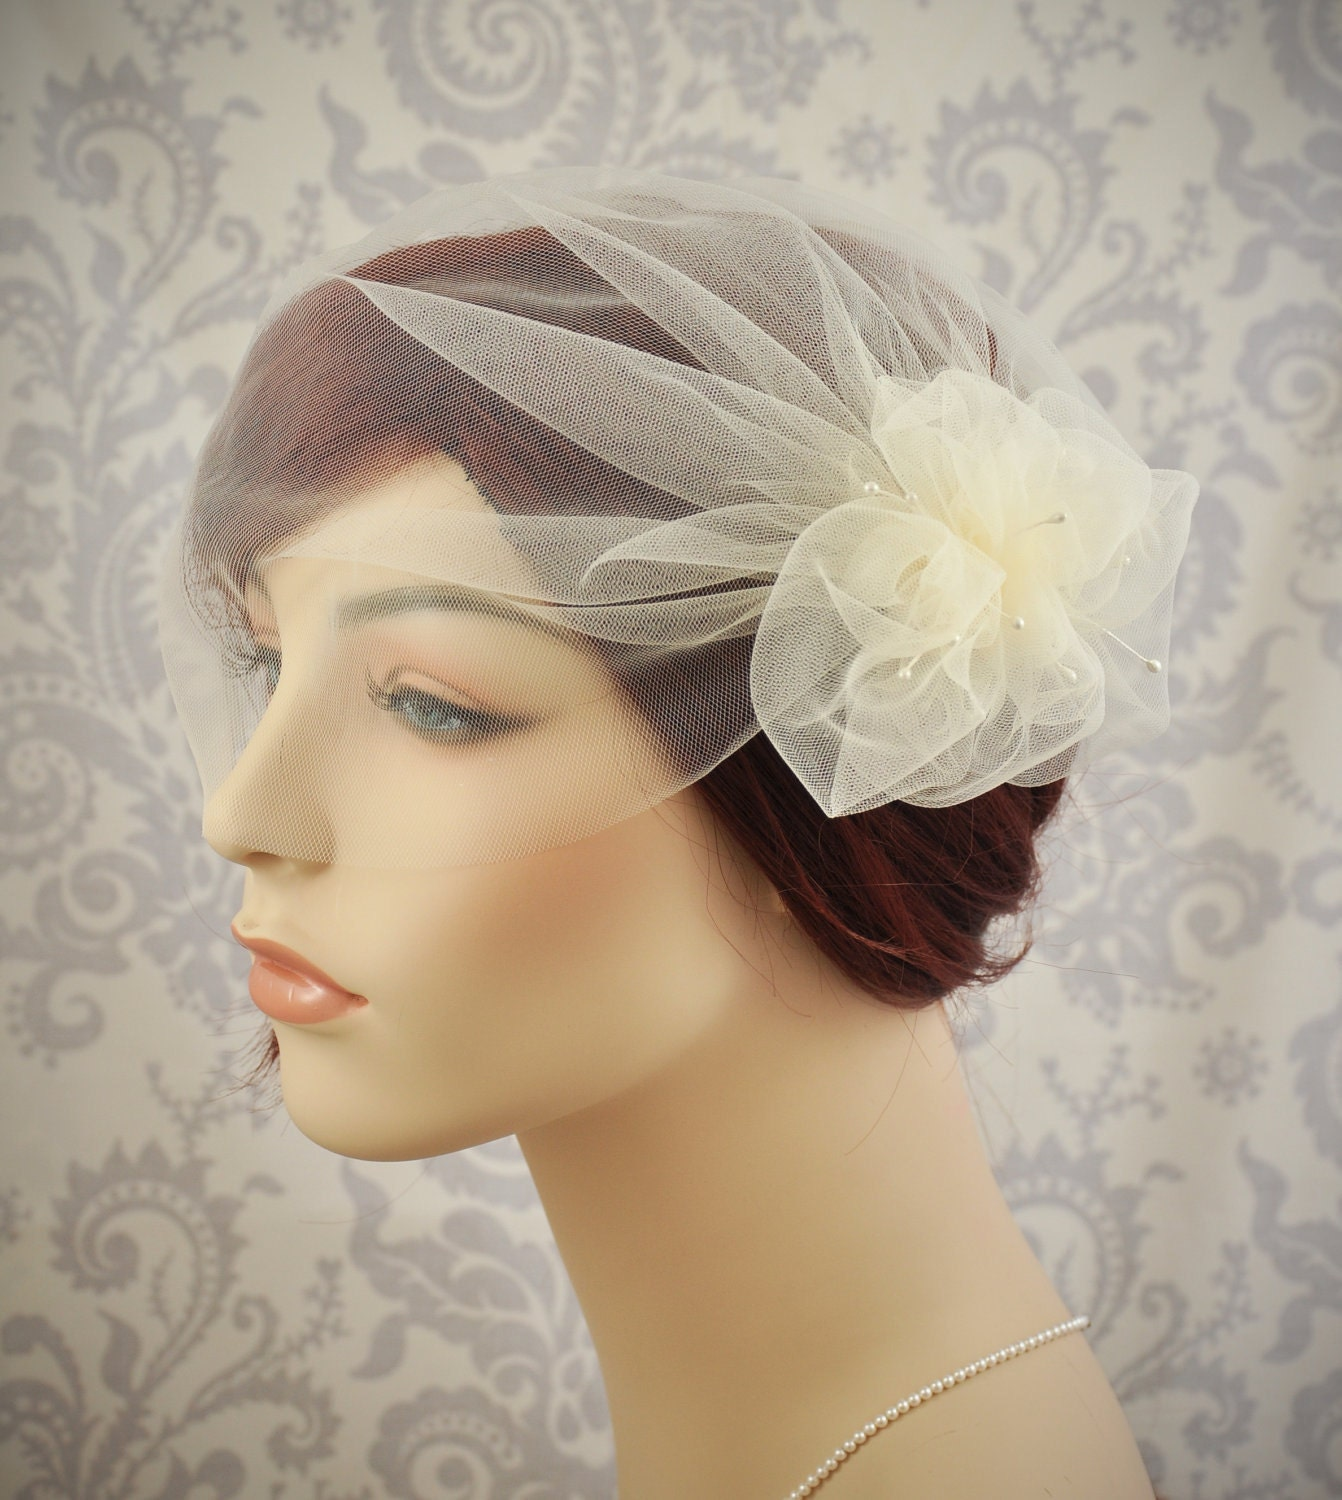 Wedding Veil Tulle Birdcage Veil With Pouf By Januaryroseboutique